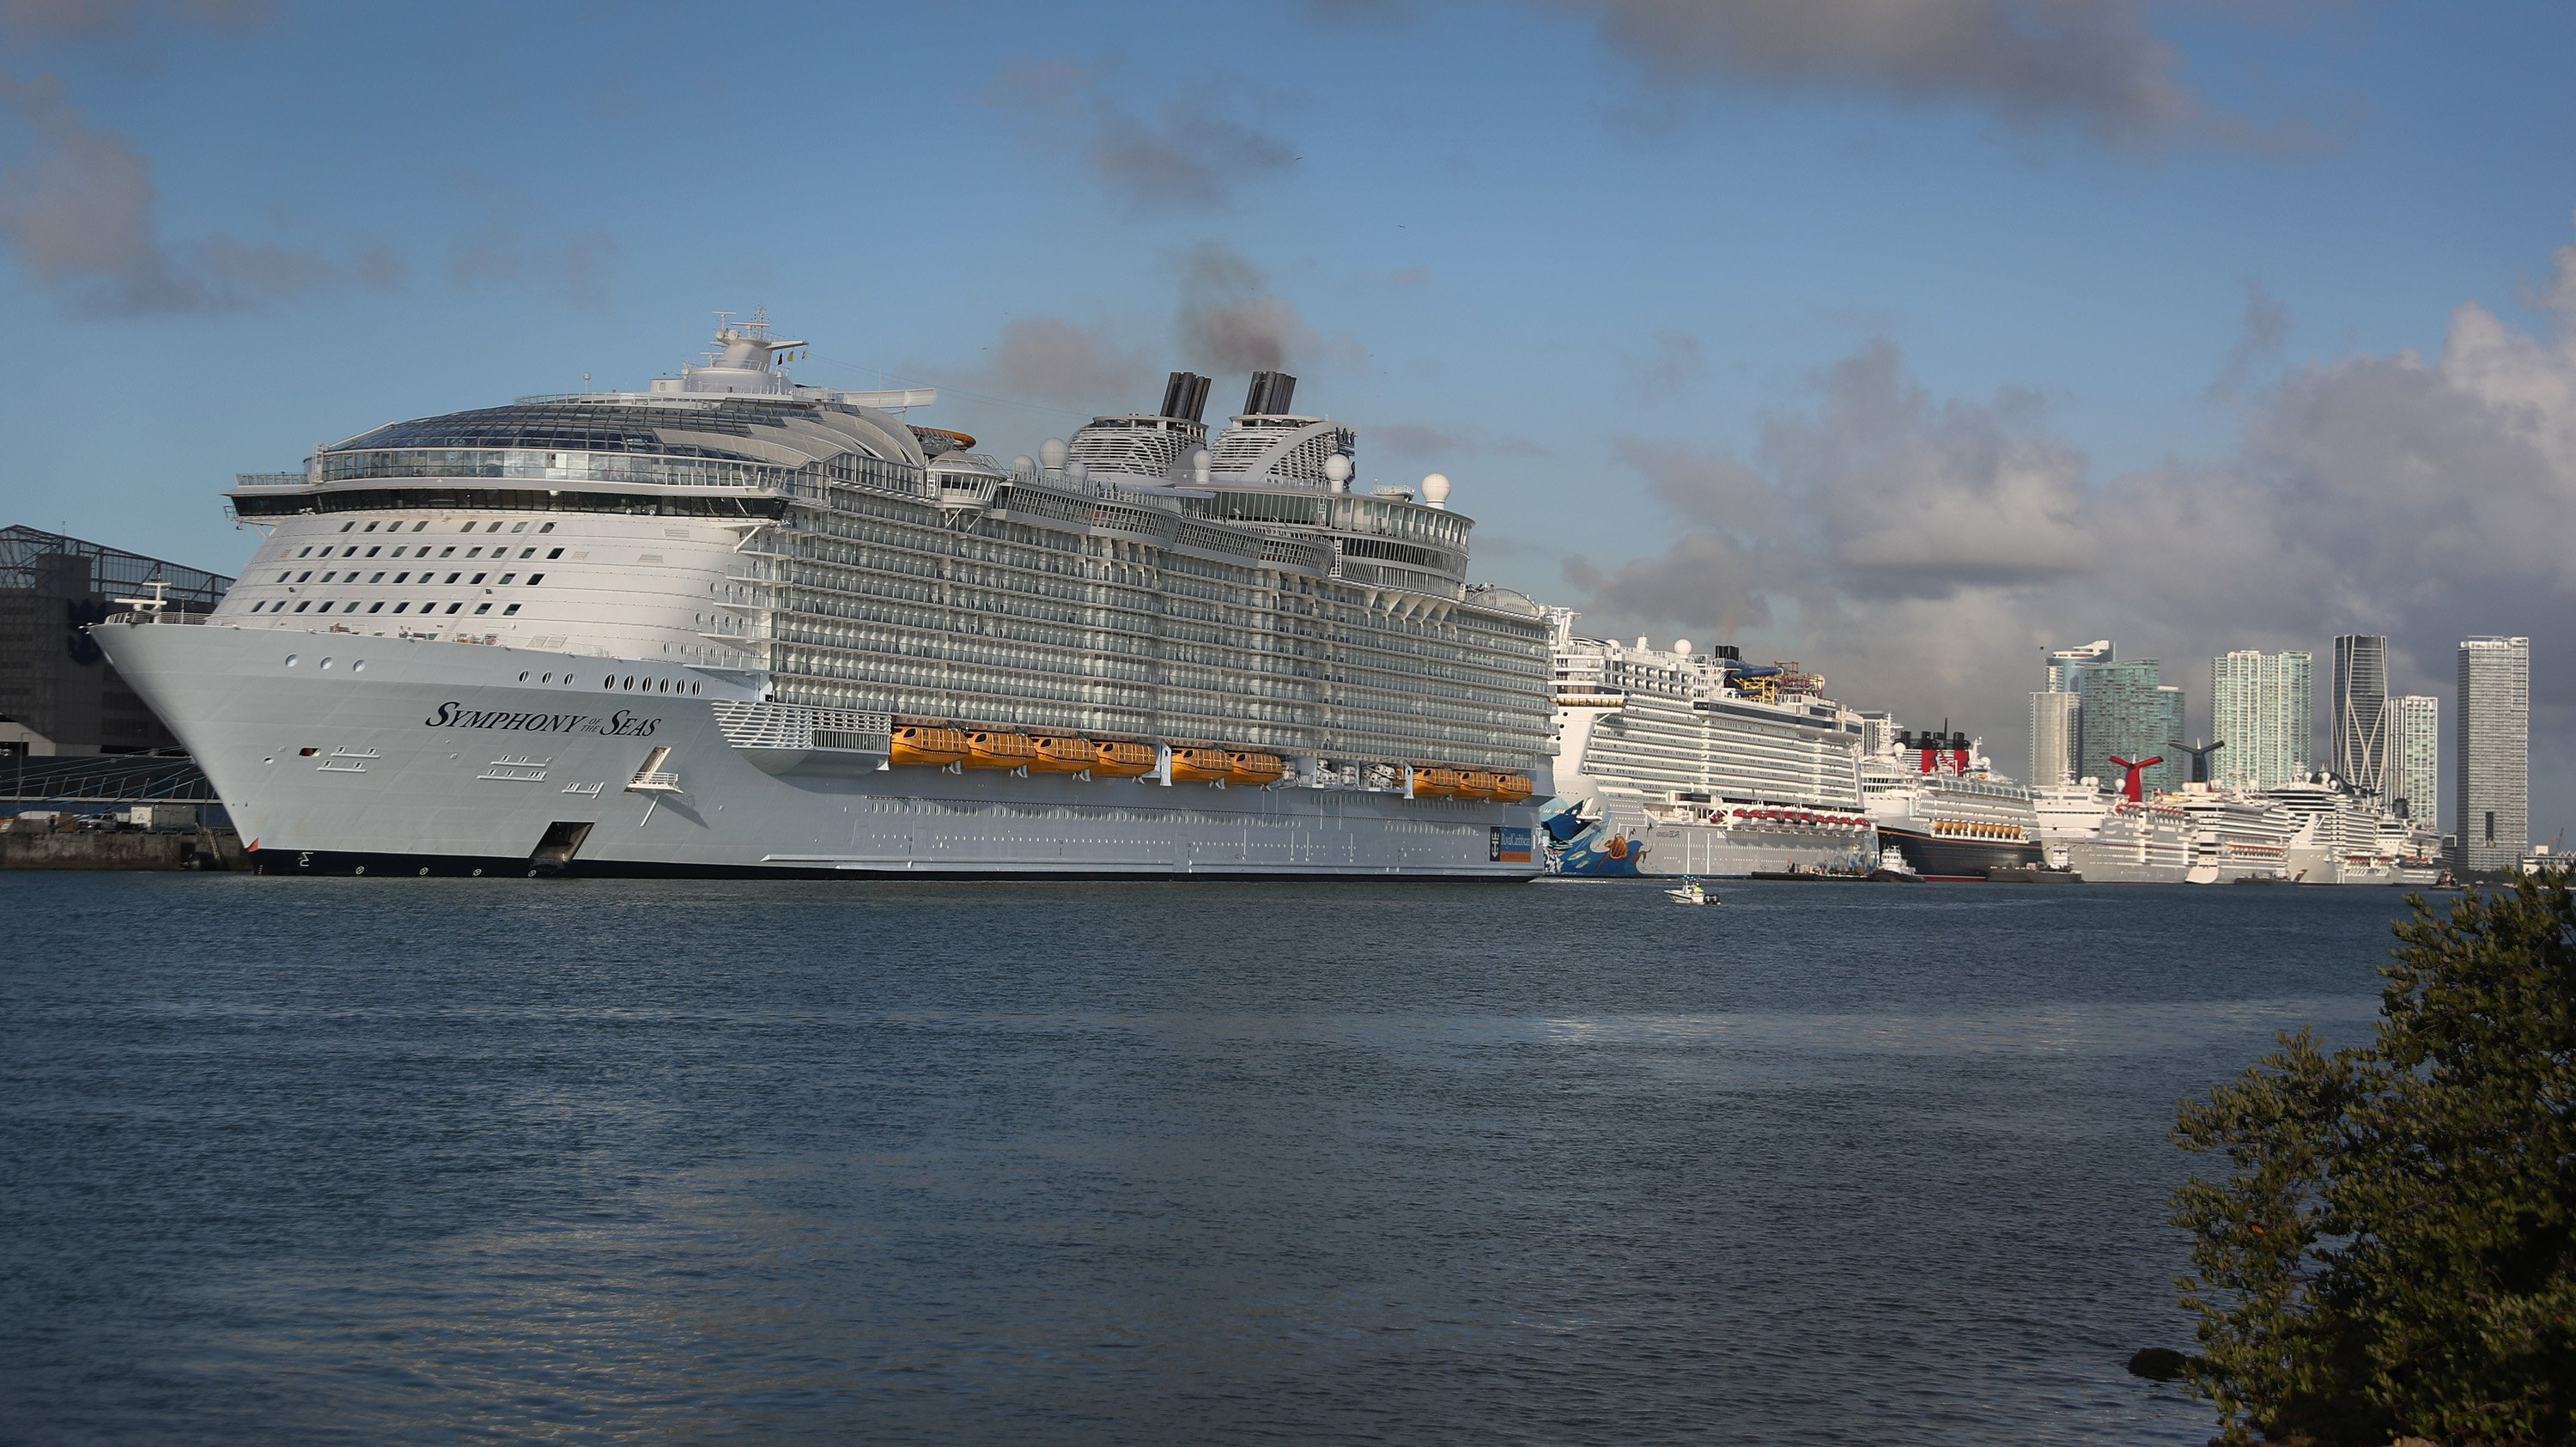 World's Largest Cruise Ship Drops Off Passengers And Crew In Miami